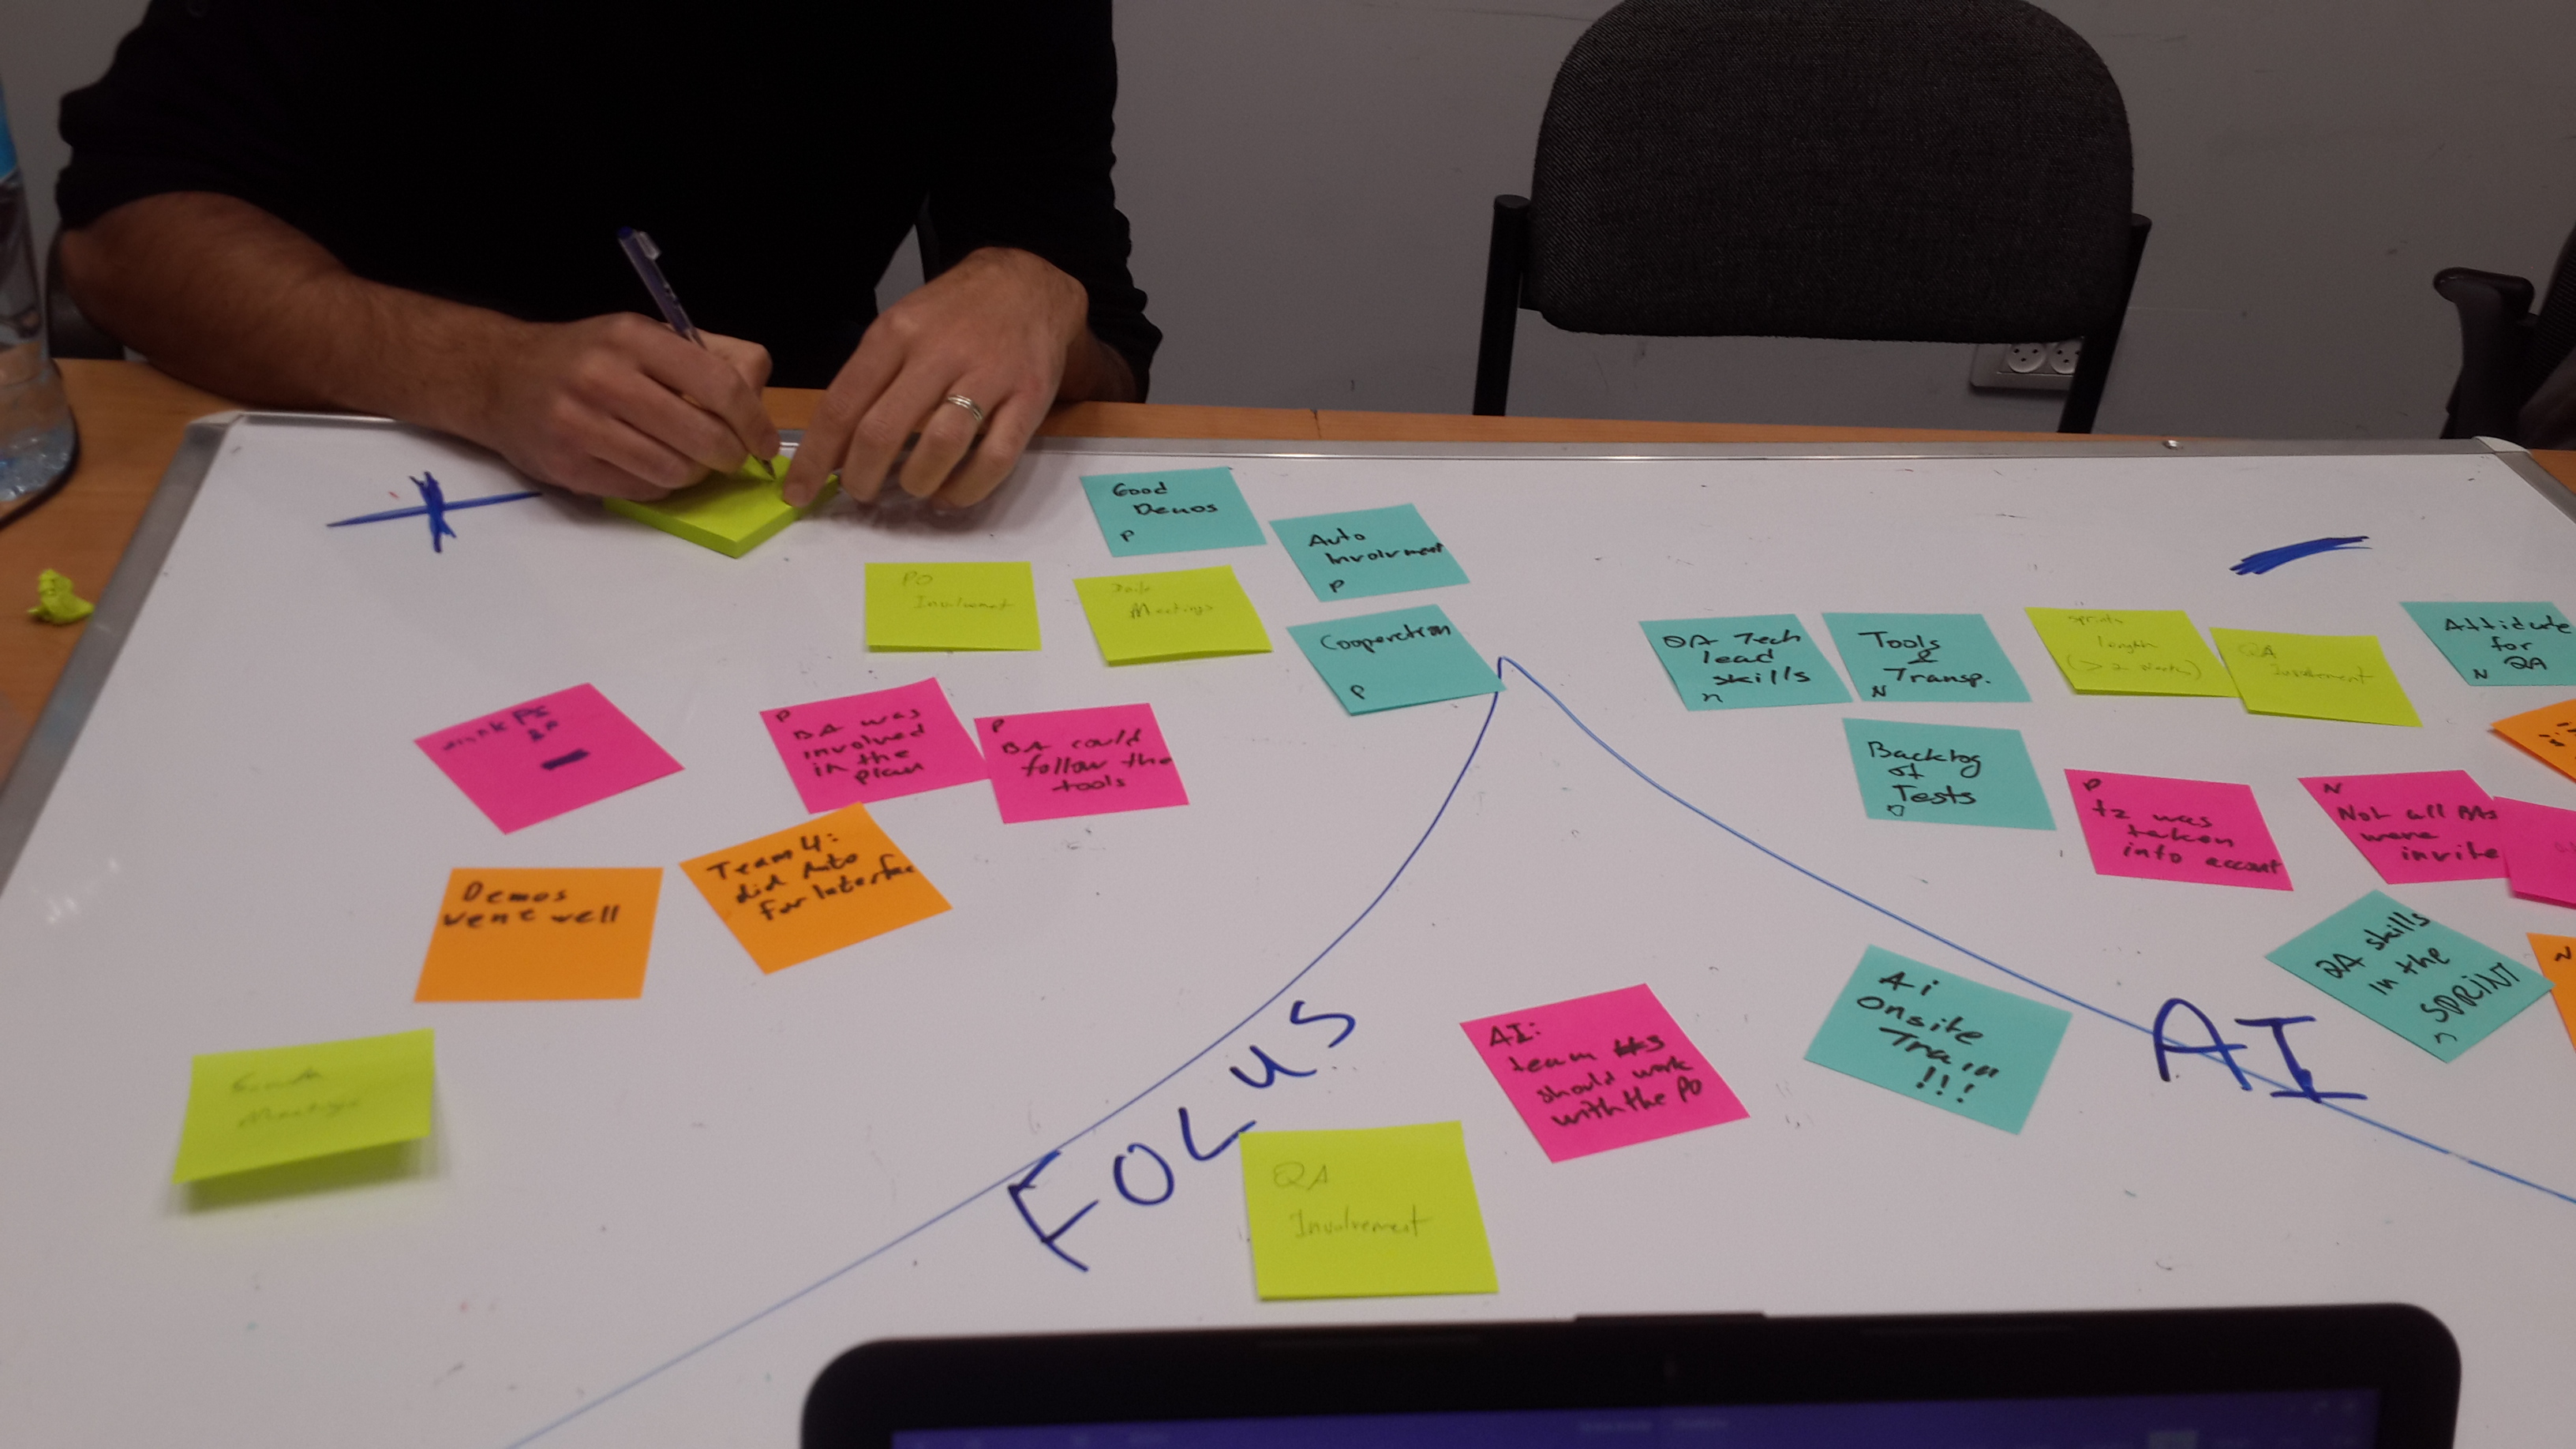 Agile management retrospective